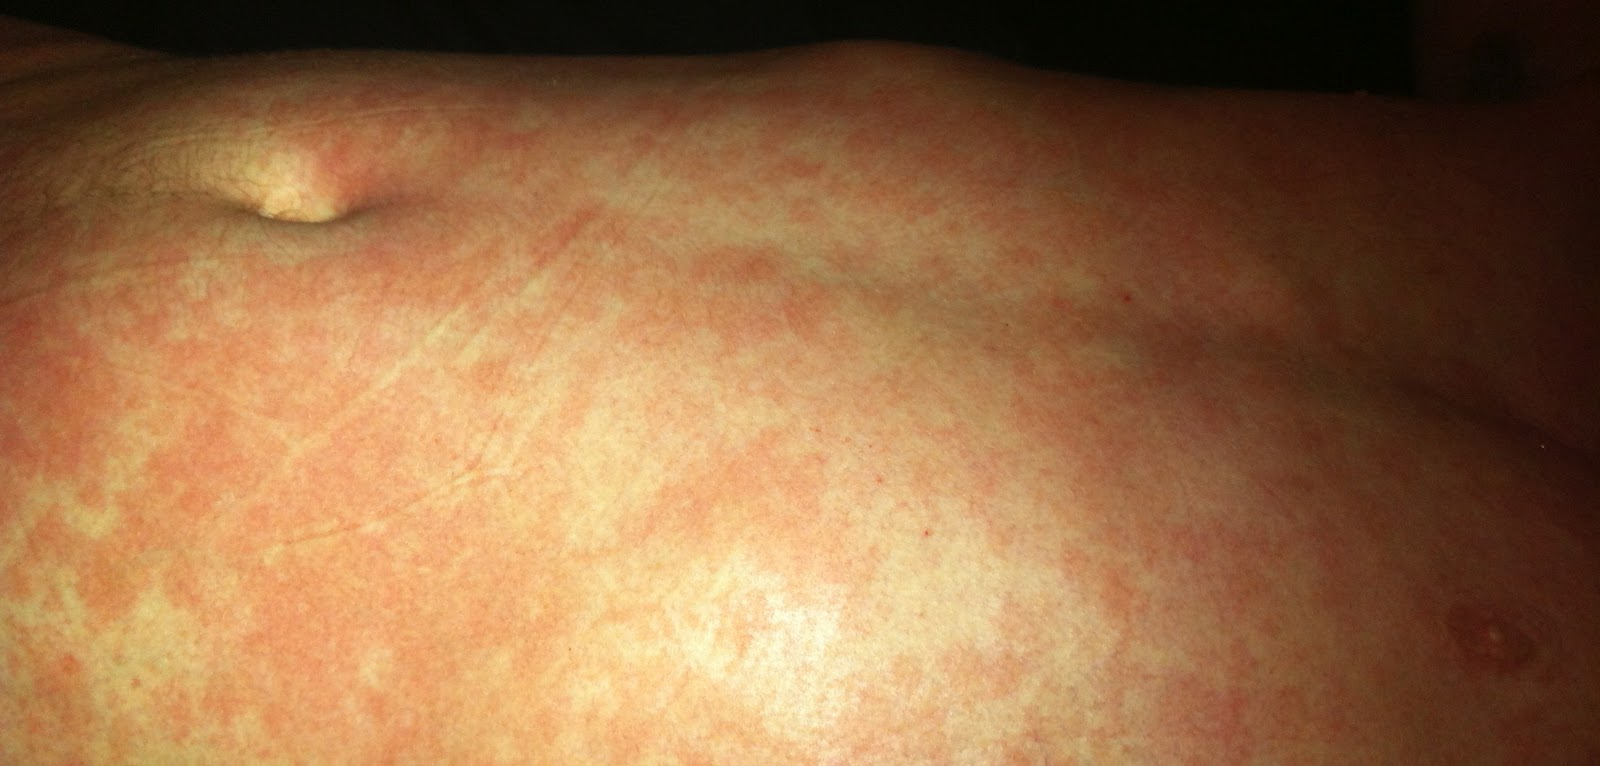 prednisone for eczema